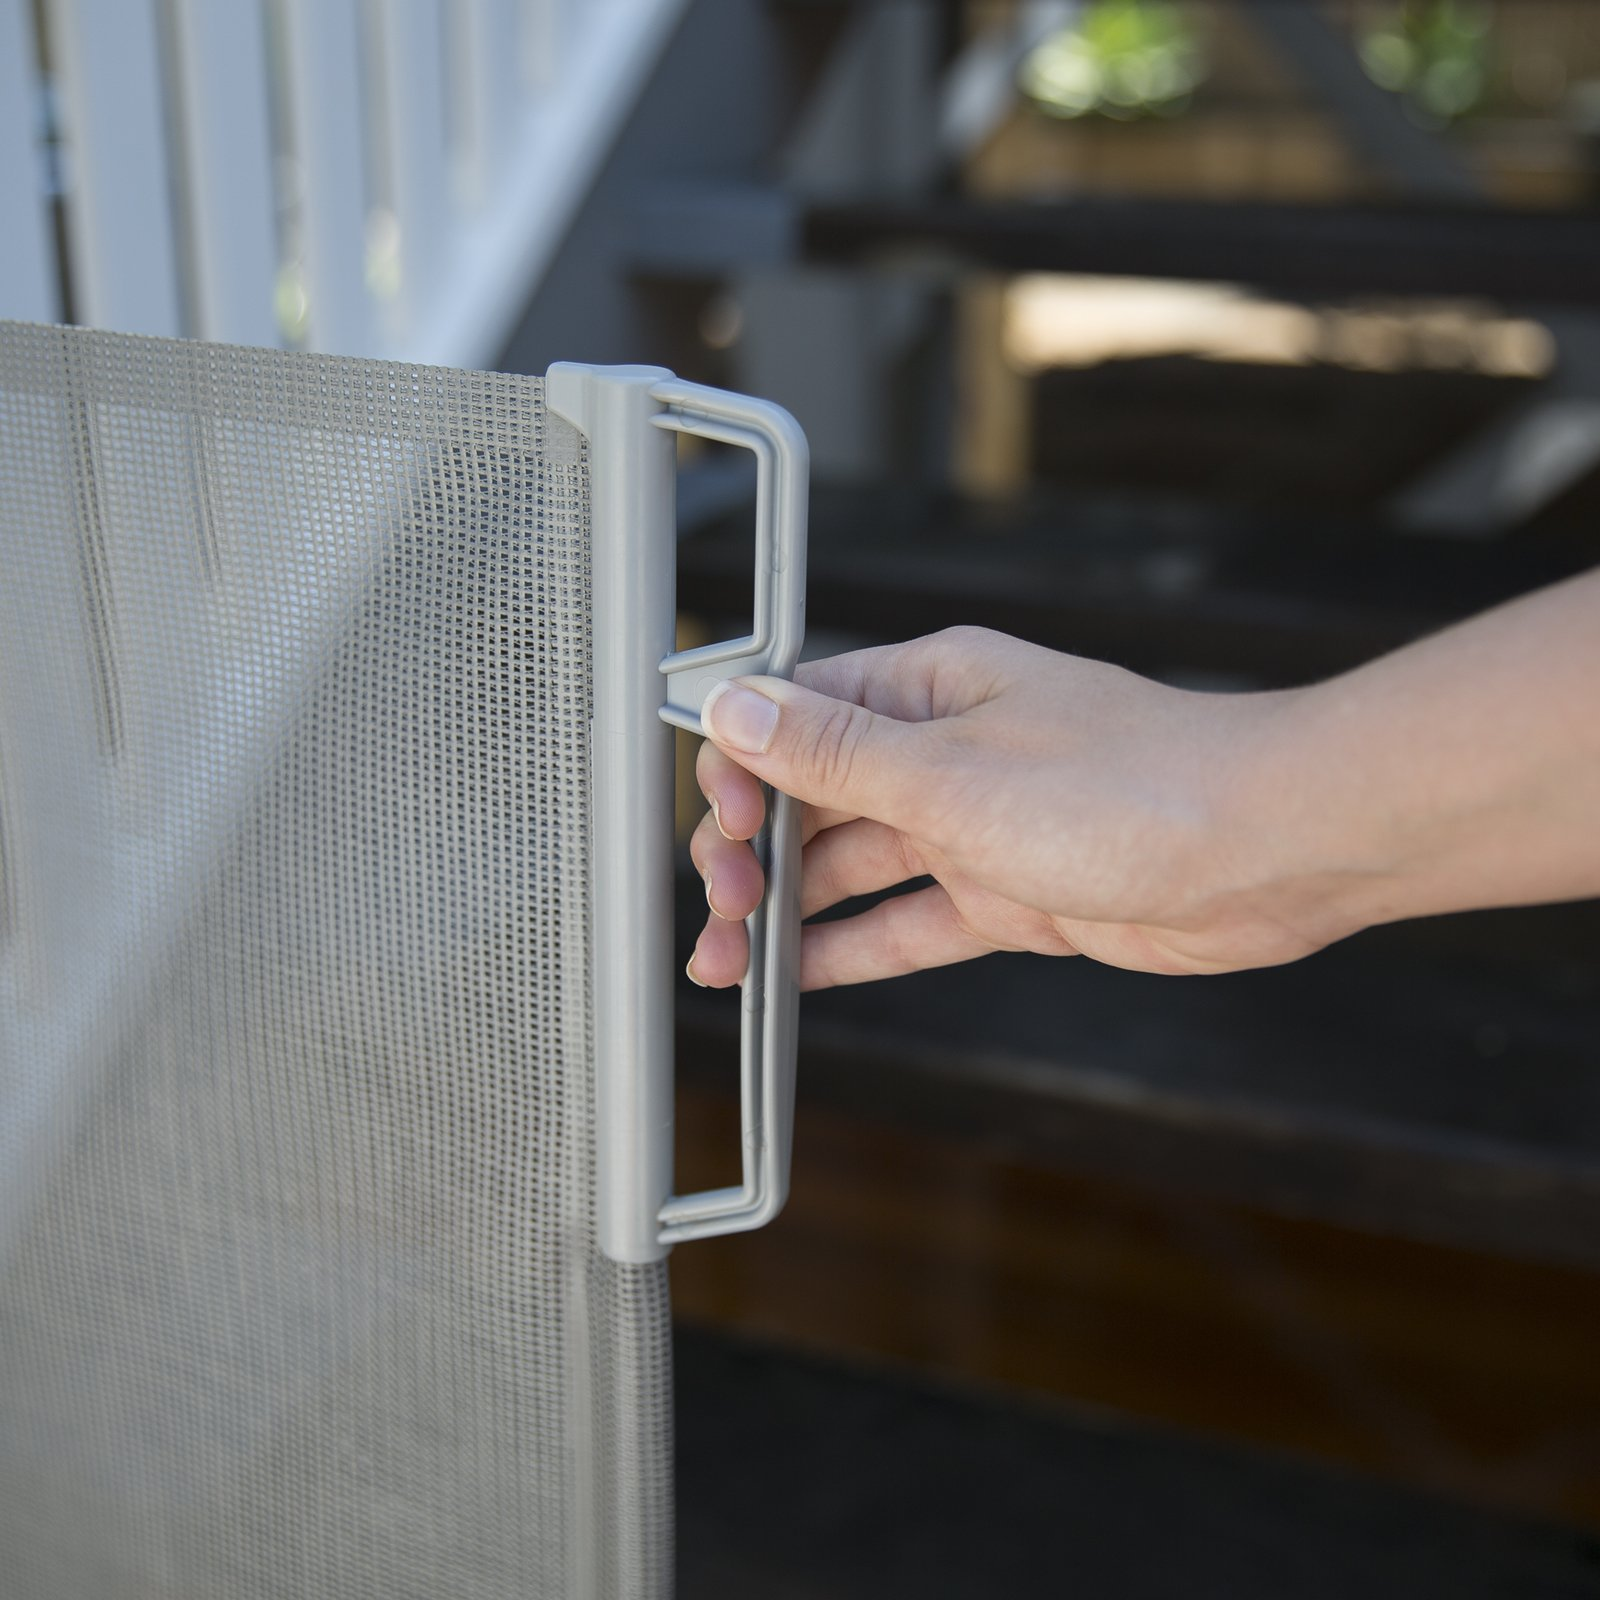 "Perma Outdoor Retractable Baby Gate, Extra Wide up to 71"", Gray by Perma Child Safety (Image #2)"